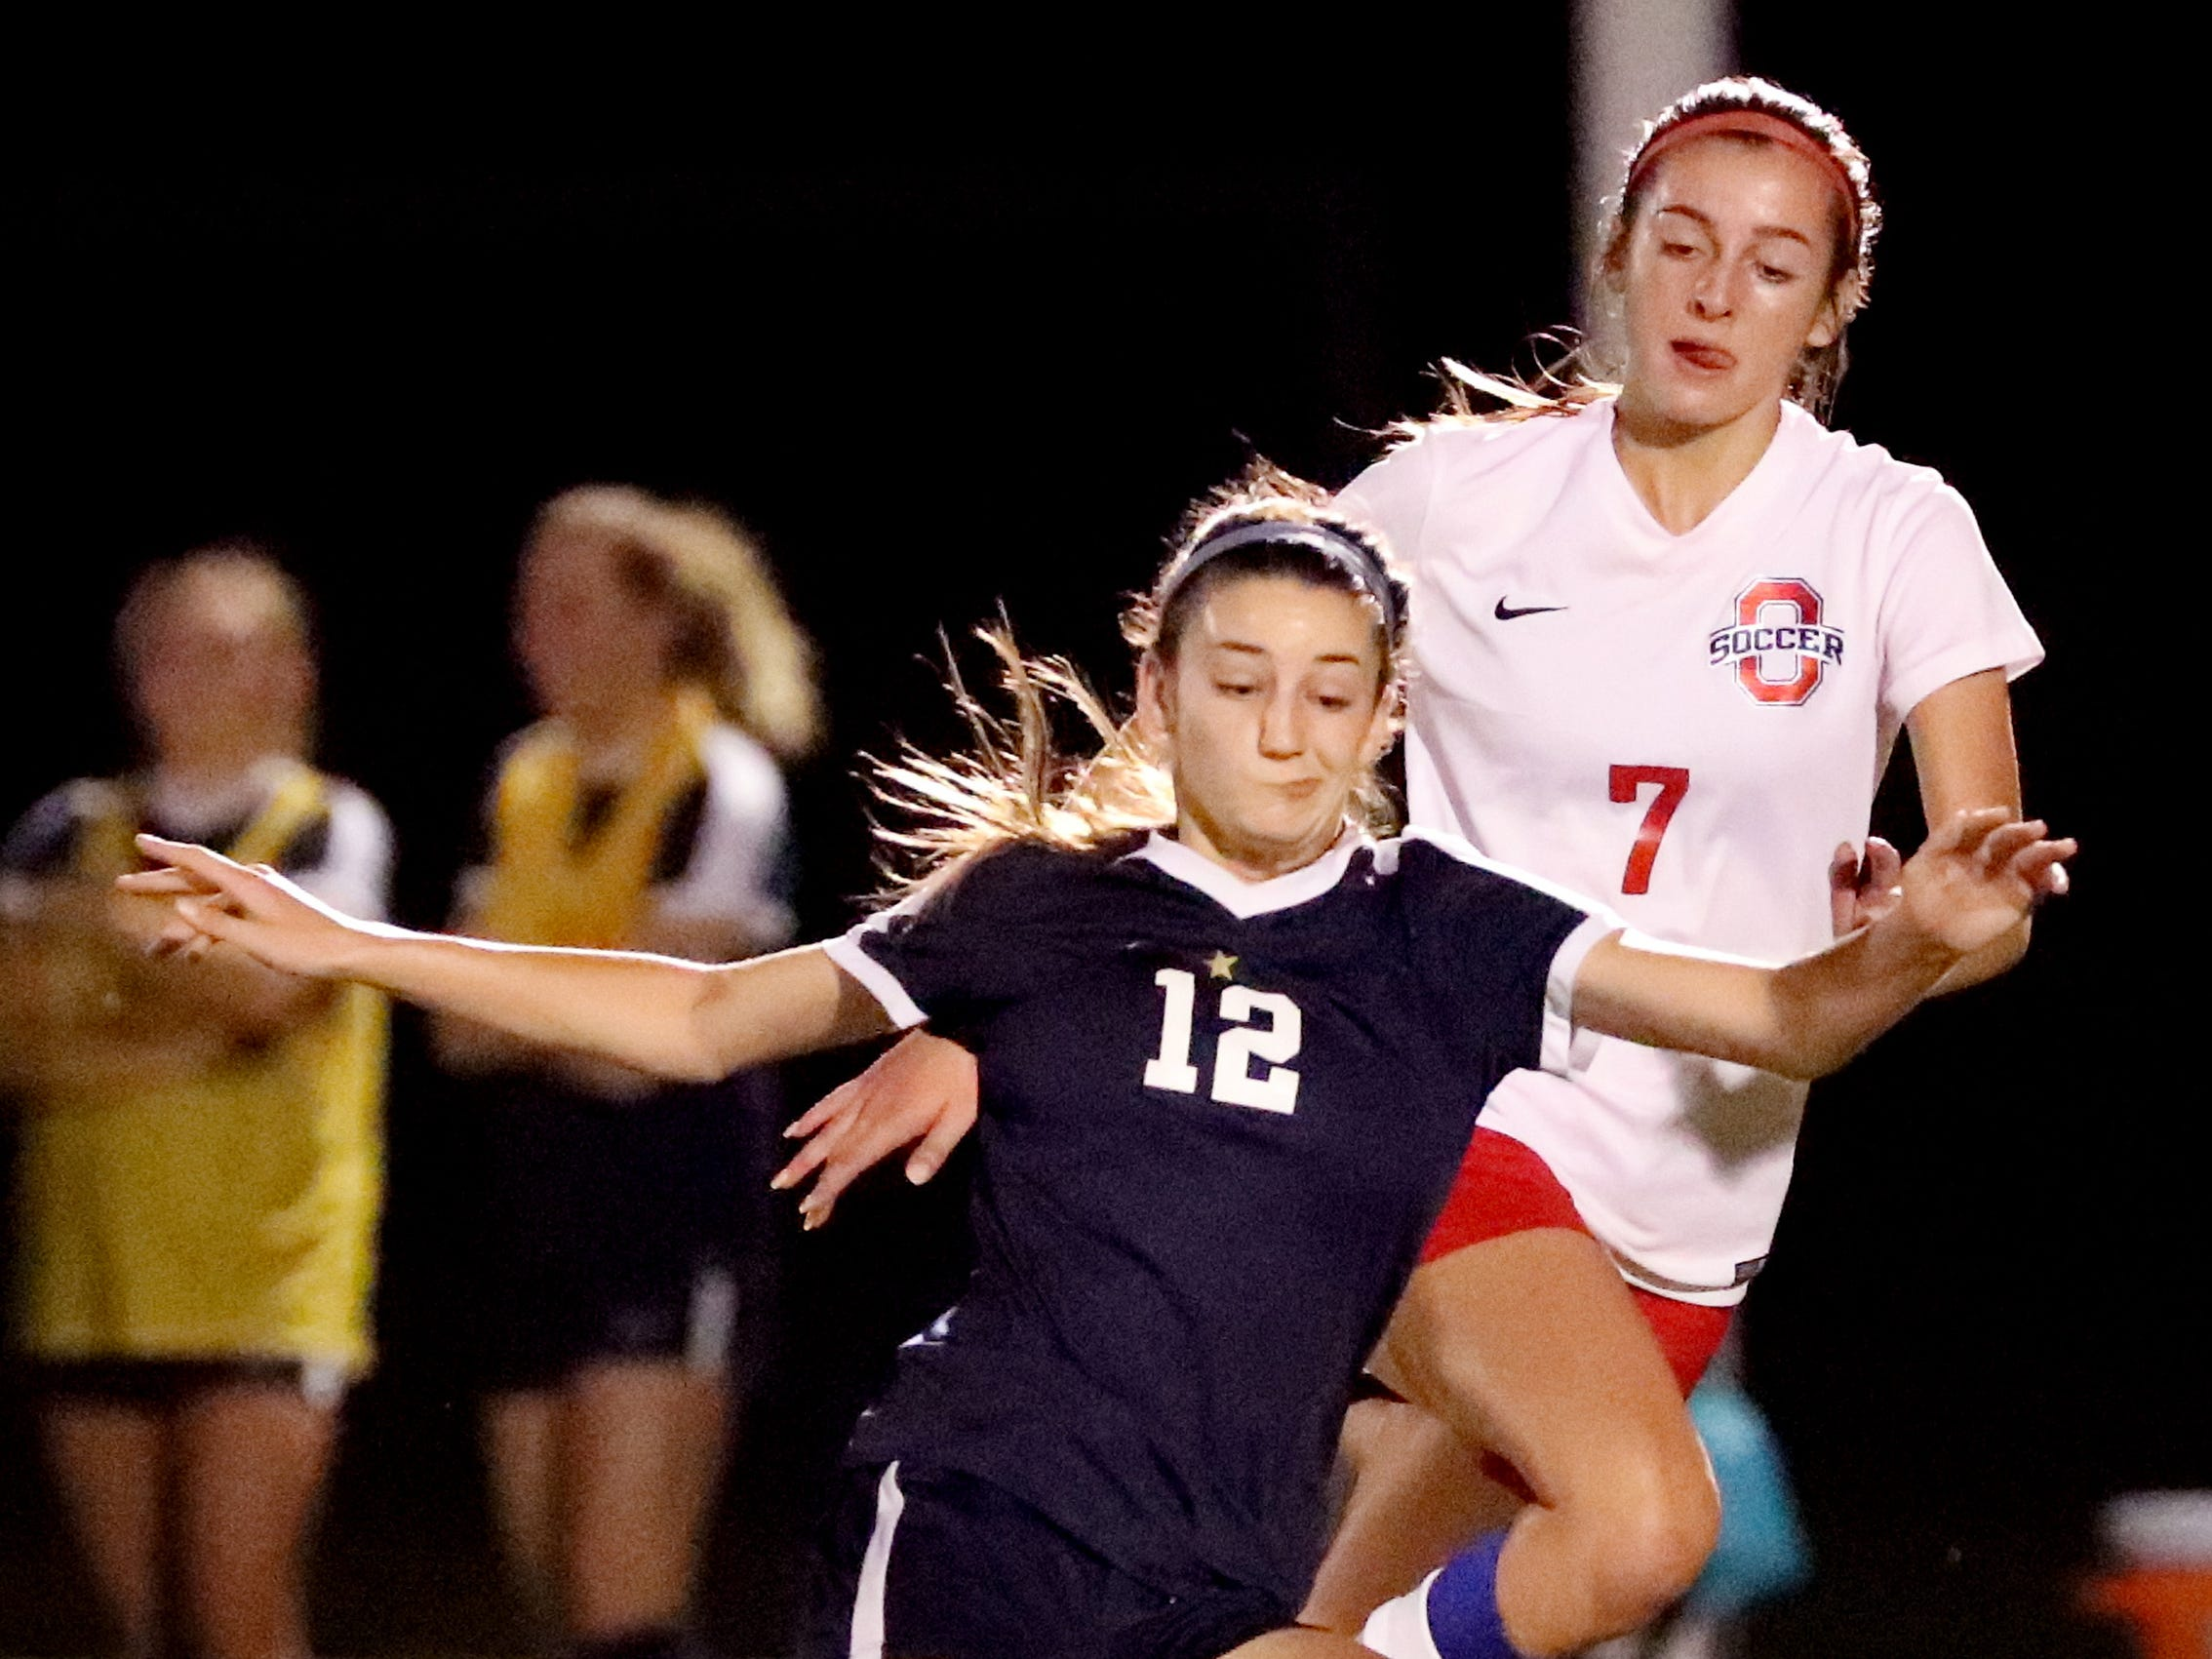 Siegel's Mia Roberts (12) goes after the ball as Oakland's Lainey Callis (7) comes up from behind Roberts in the semifinals of the 7-AAA Soccer Tournament, on Tuesday,  Oct. 09, 2018 at the Siegel Soccer Complex.